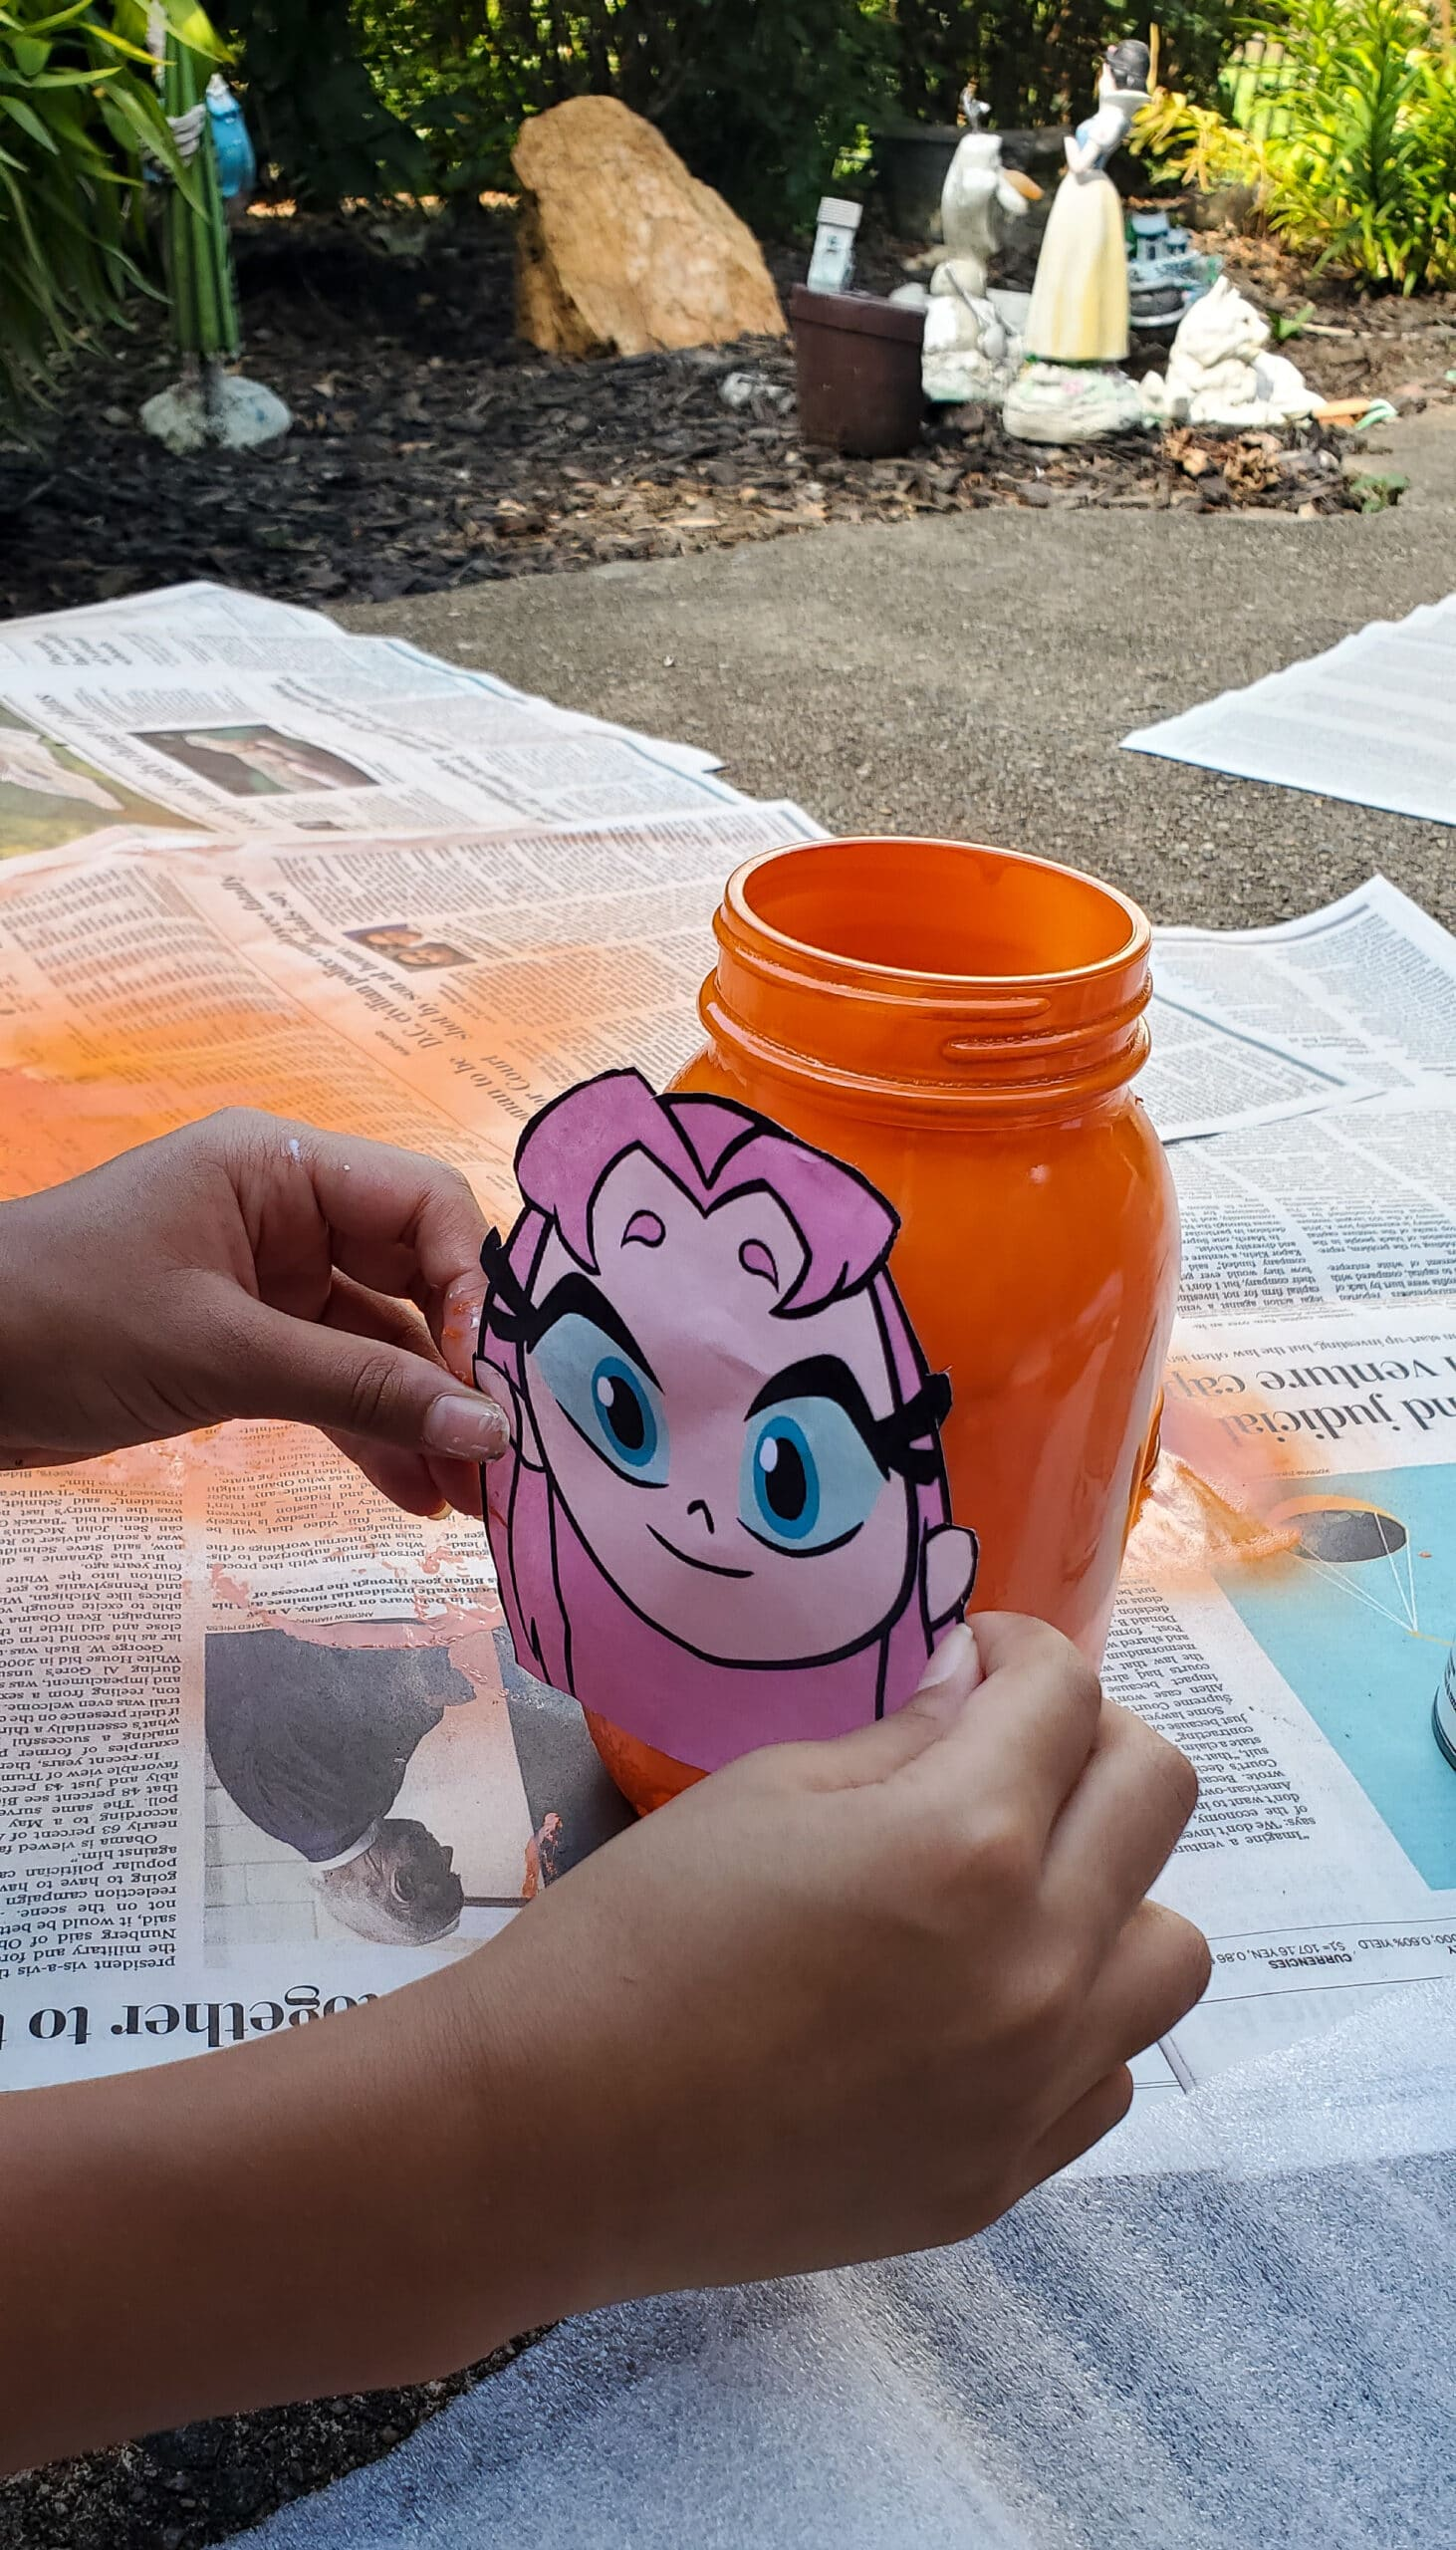 Teen Titans Go!Character Banks Applying Characters. It's week 5 at Camp Warner Bros.! It's time to get crafty with this week's activity Teen Titans Go! Vs. Teen Titans Character Banks. Grab your printables on my blog, along with some more supplies to create your very own Teen Titans Go! vs Teen Titans Character Banks.